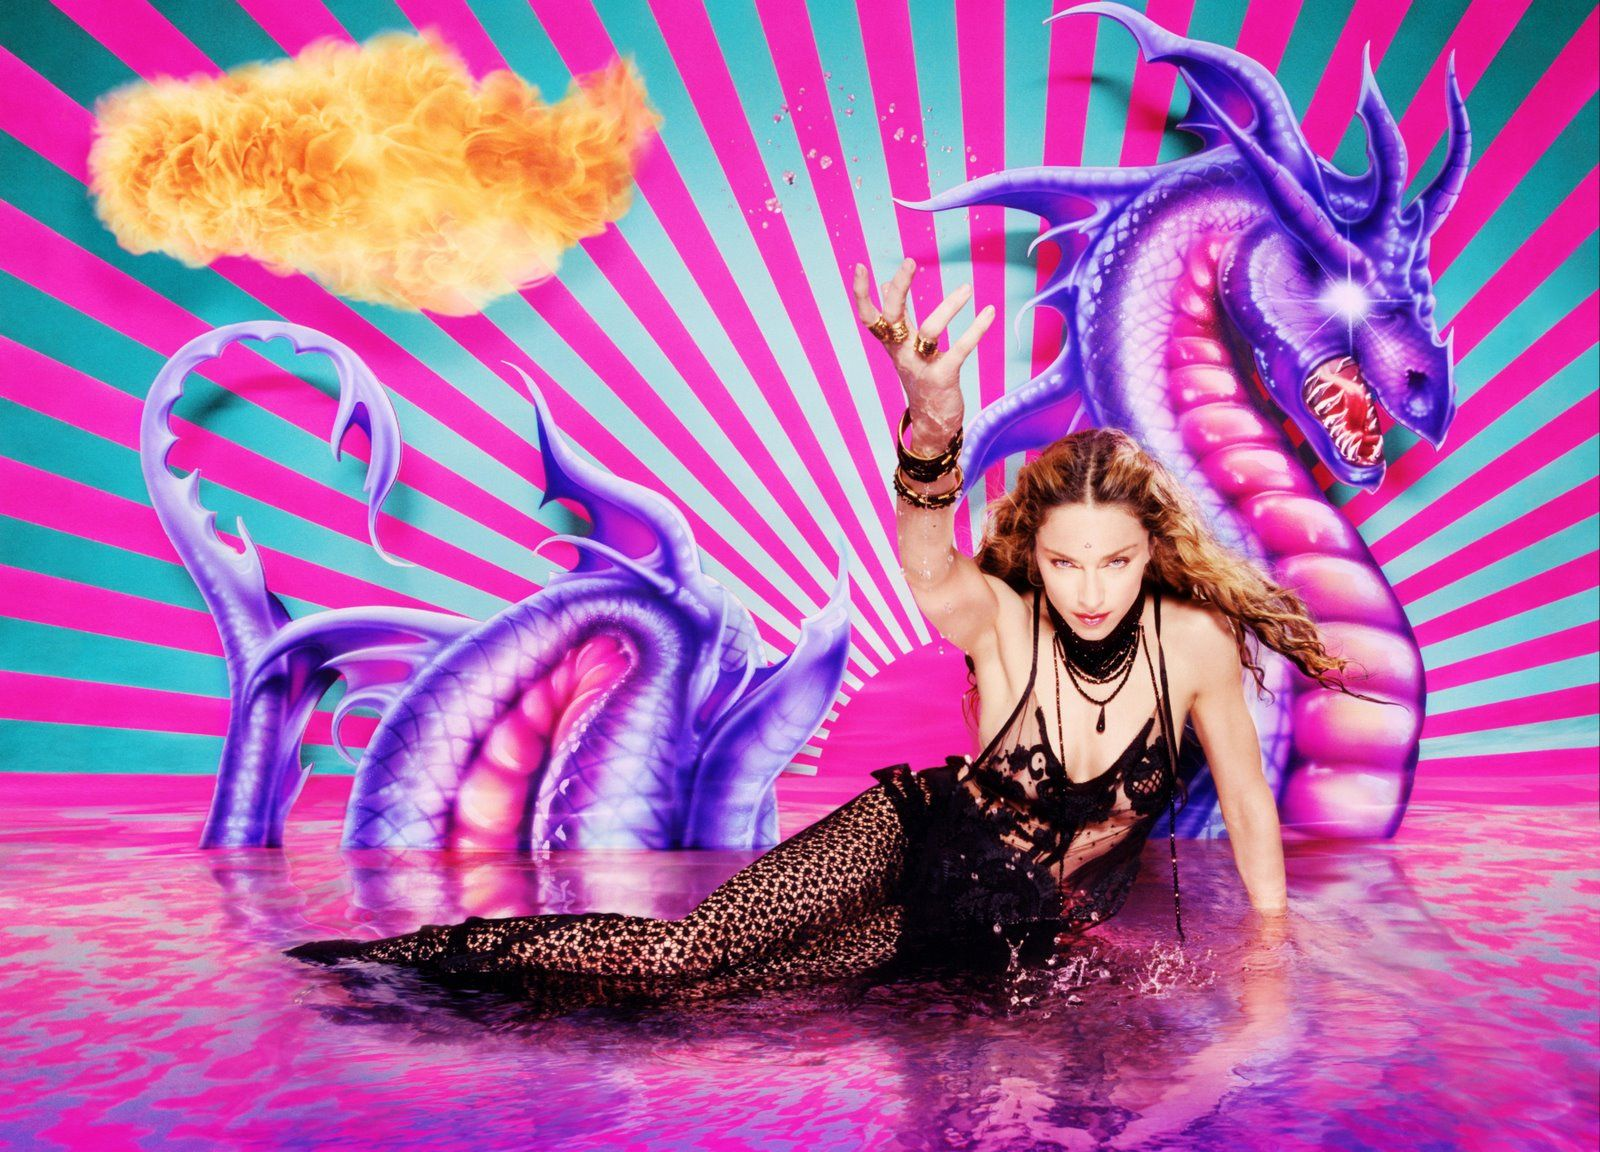 Furious Seasons by David LaChapelle